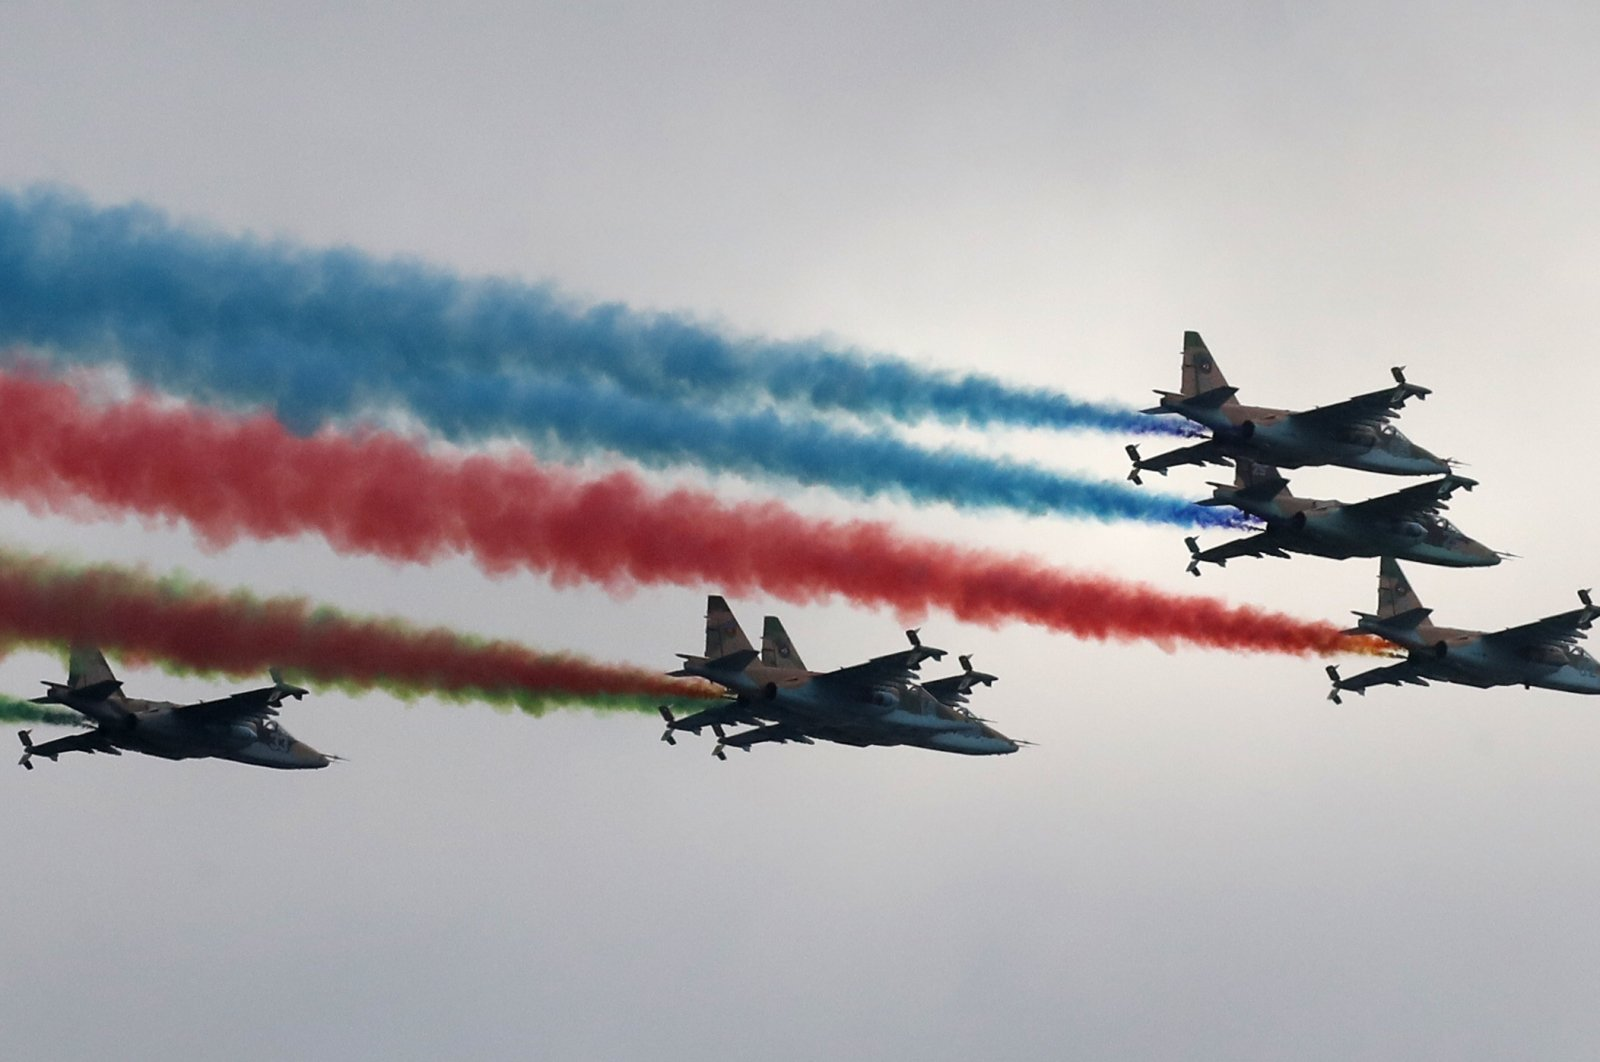 Sukhoi Su-25 jet fighters leave a trail in Azerbaijani national colors during a military parade marking the end of the Nagorno-Karabakh military conflict, Baku, Azerbaijan, Dec. 10, 2020. (Photo by Getty Images)